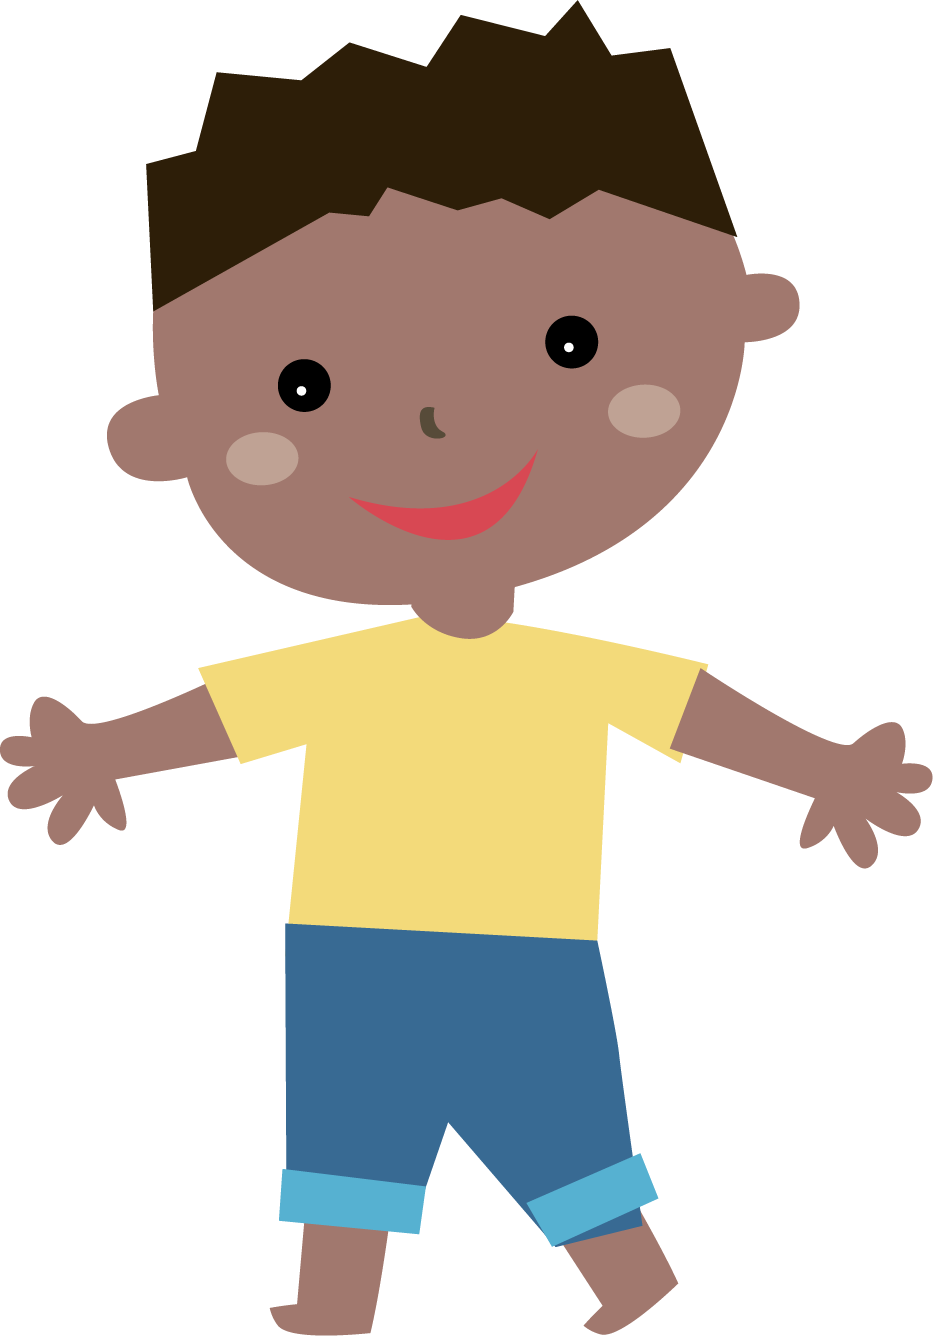 Little boy clipart 20 free Cliparts | Download images on